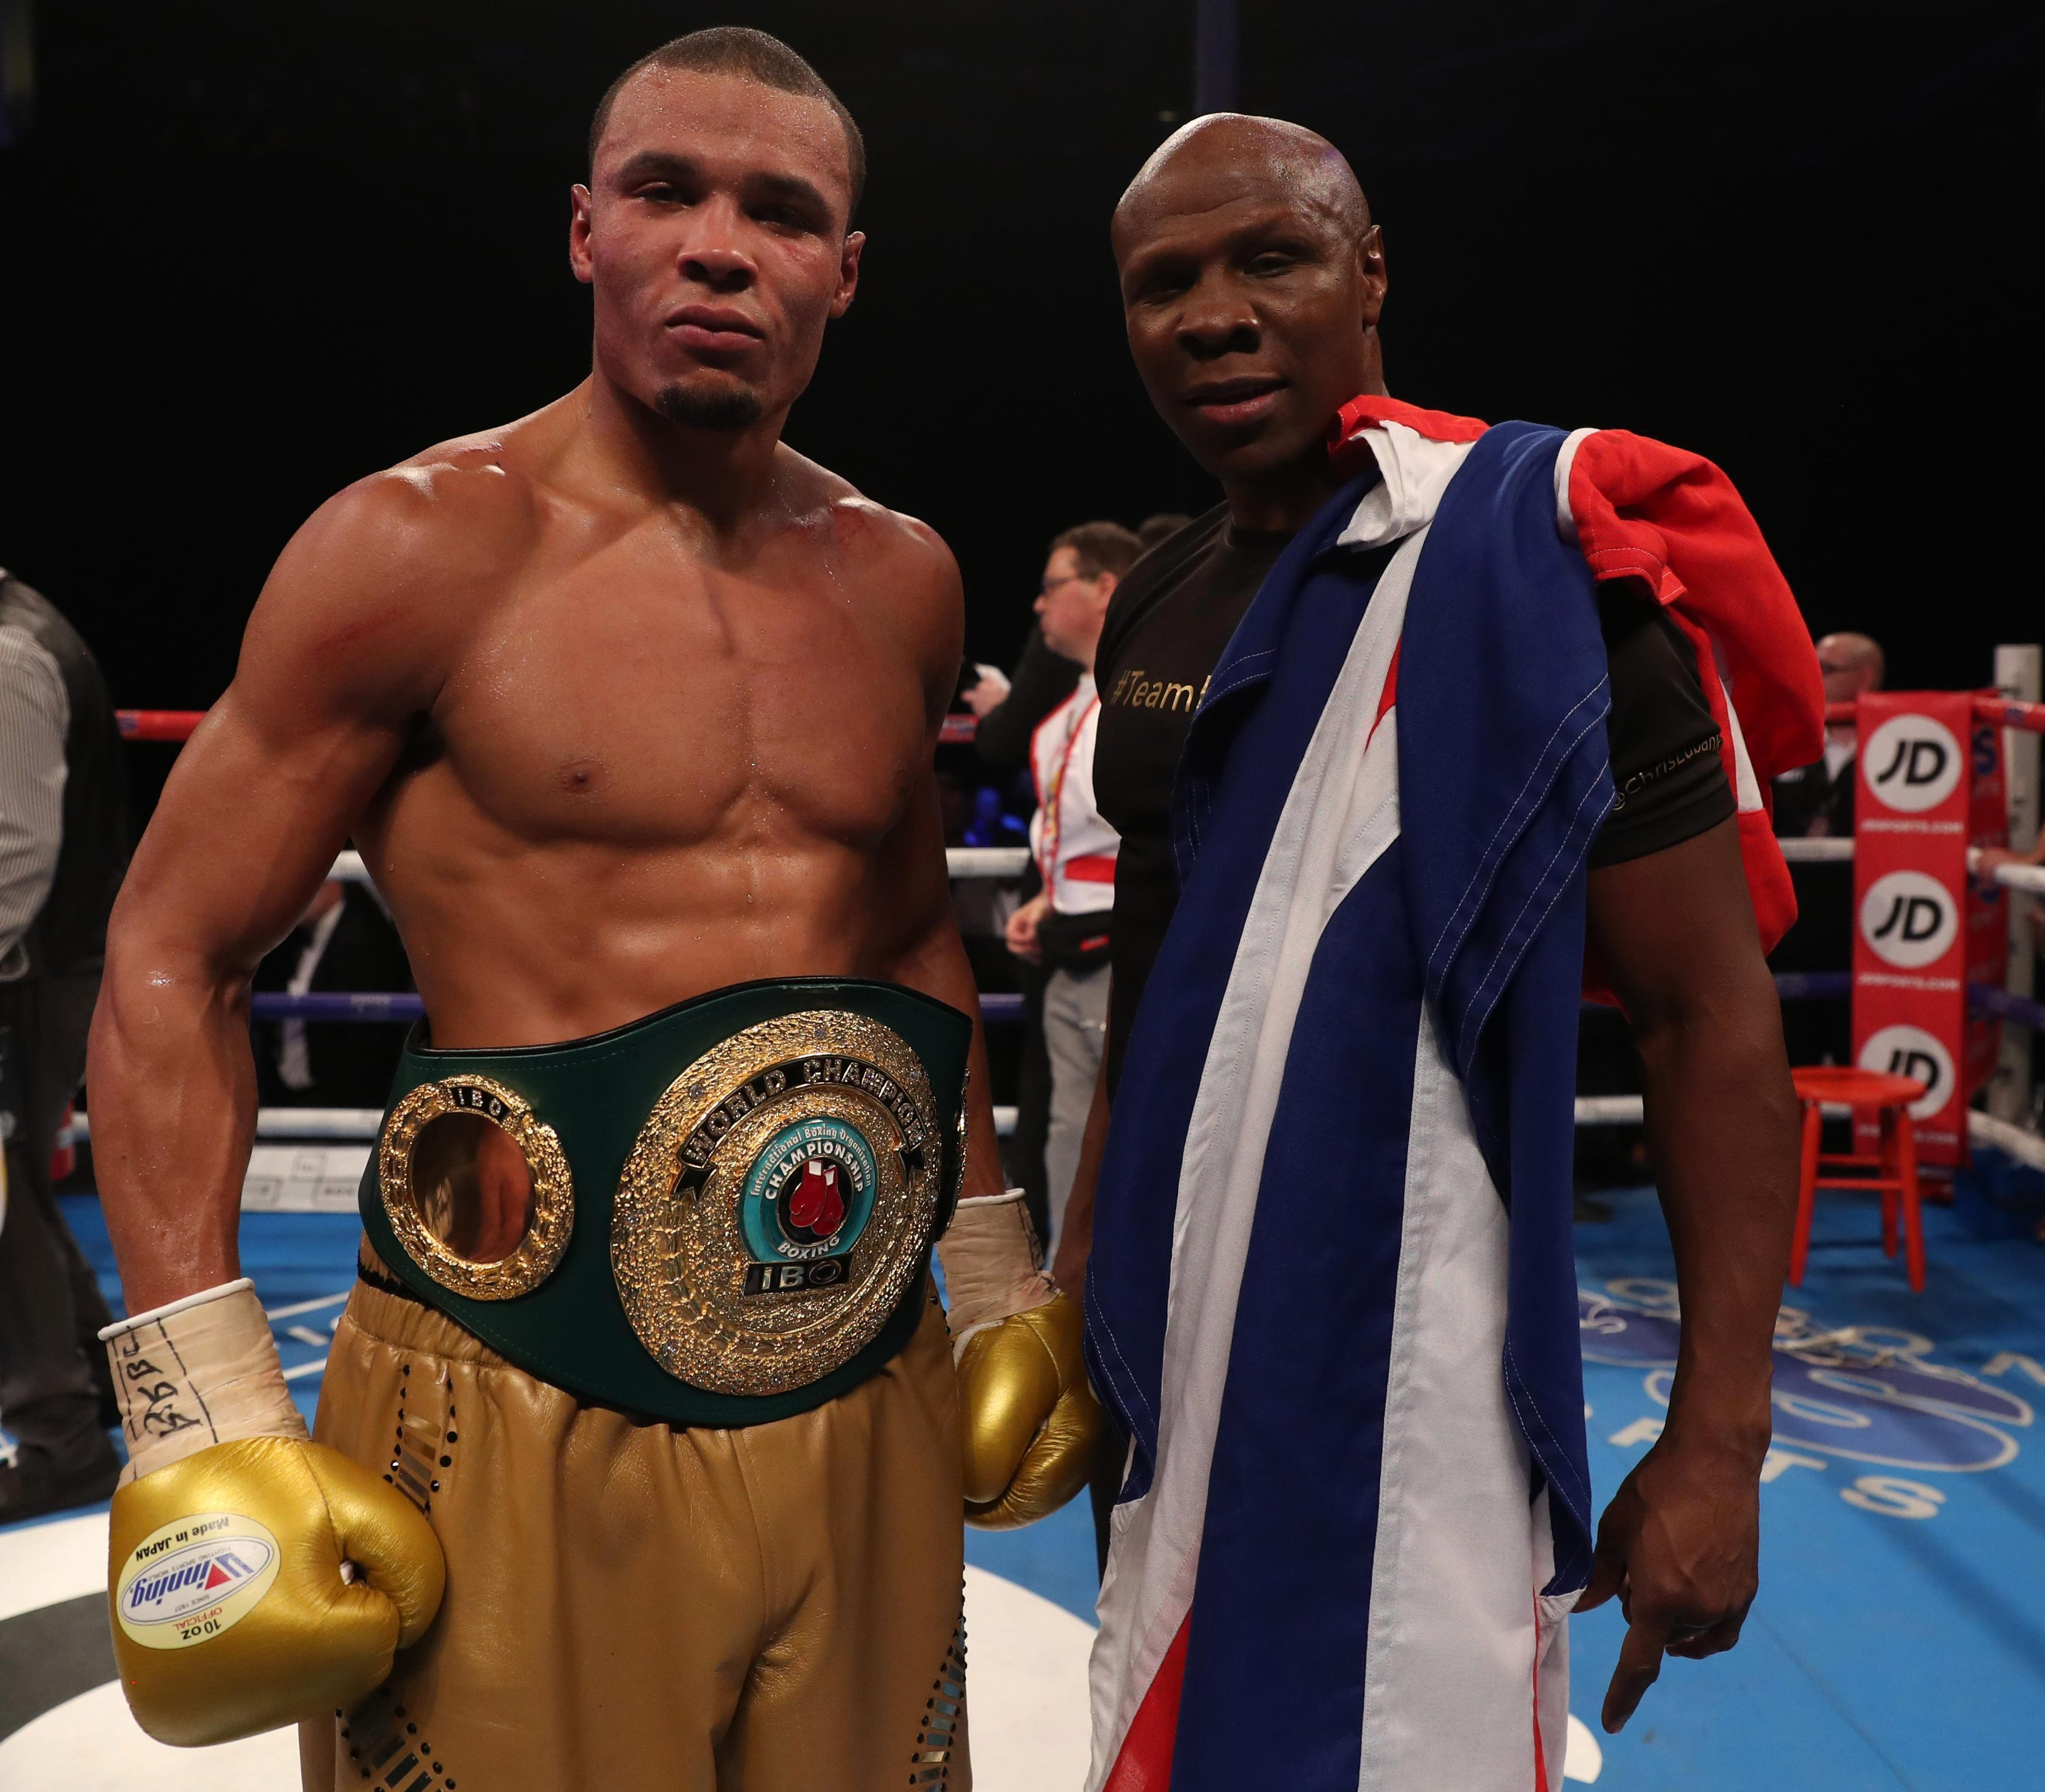 Chris Eubank Sr has been slammed as a disgrace by Tyson Fury for attempting to use Nick Blackwell to sell his son's next fight